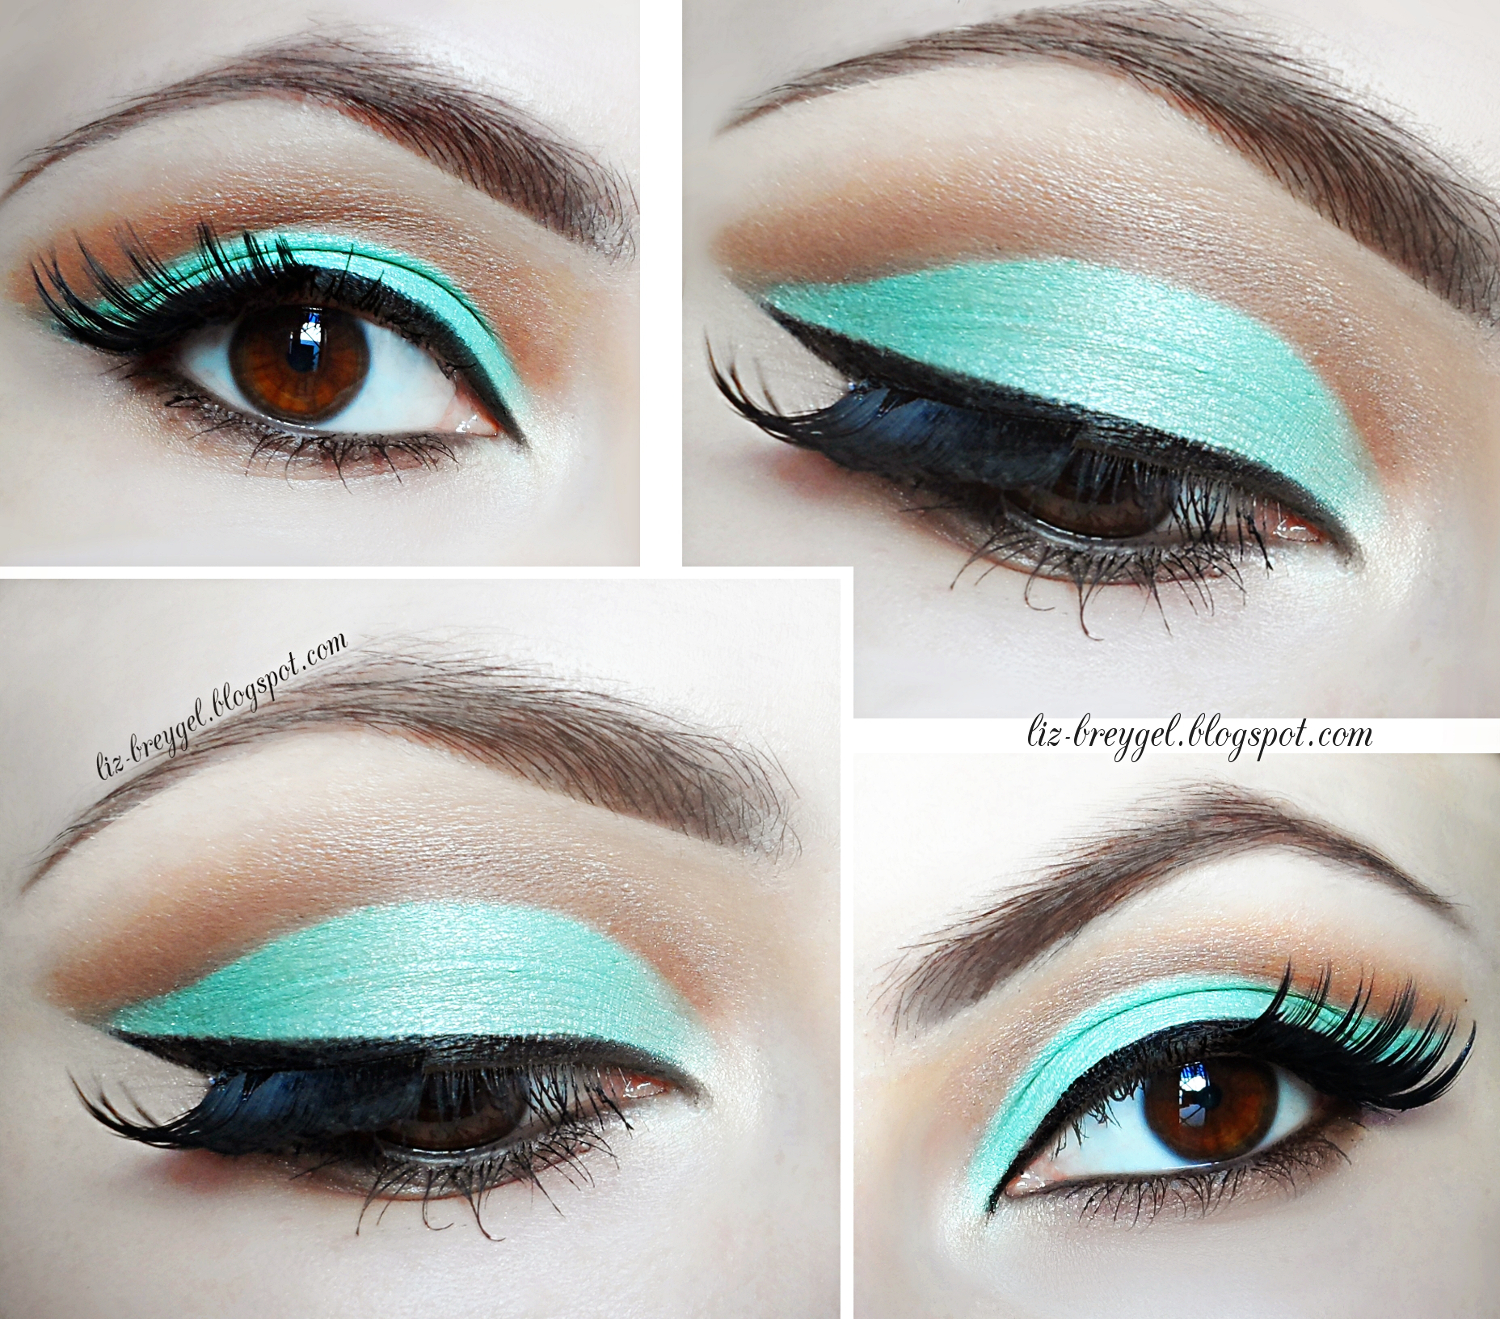 Makeup for small eyes to